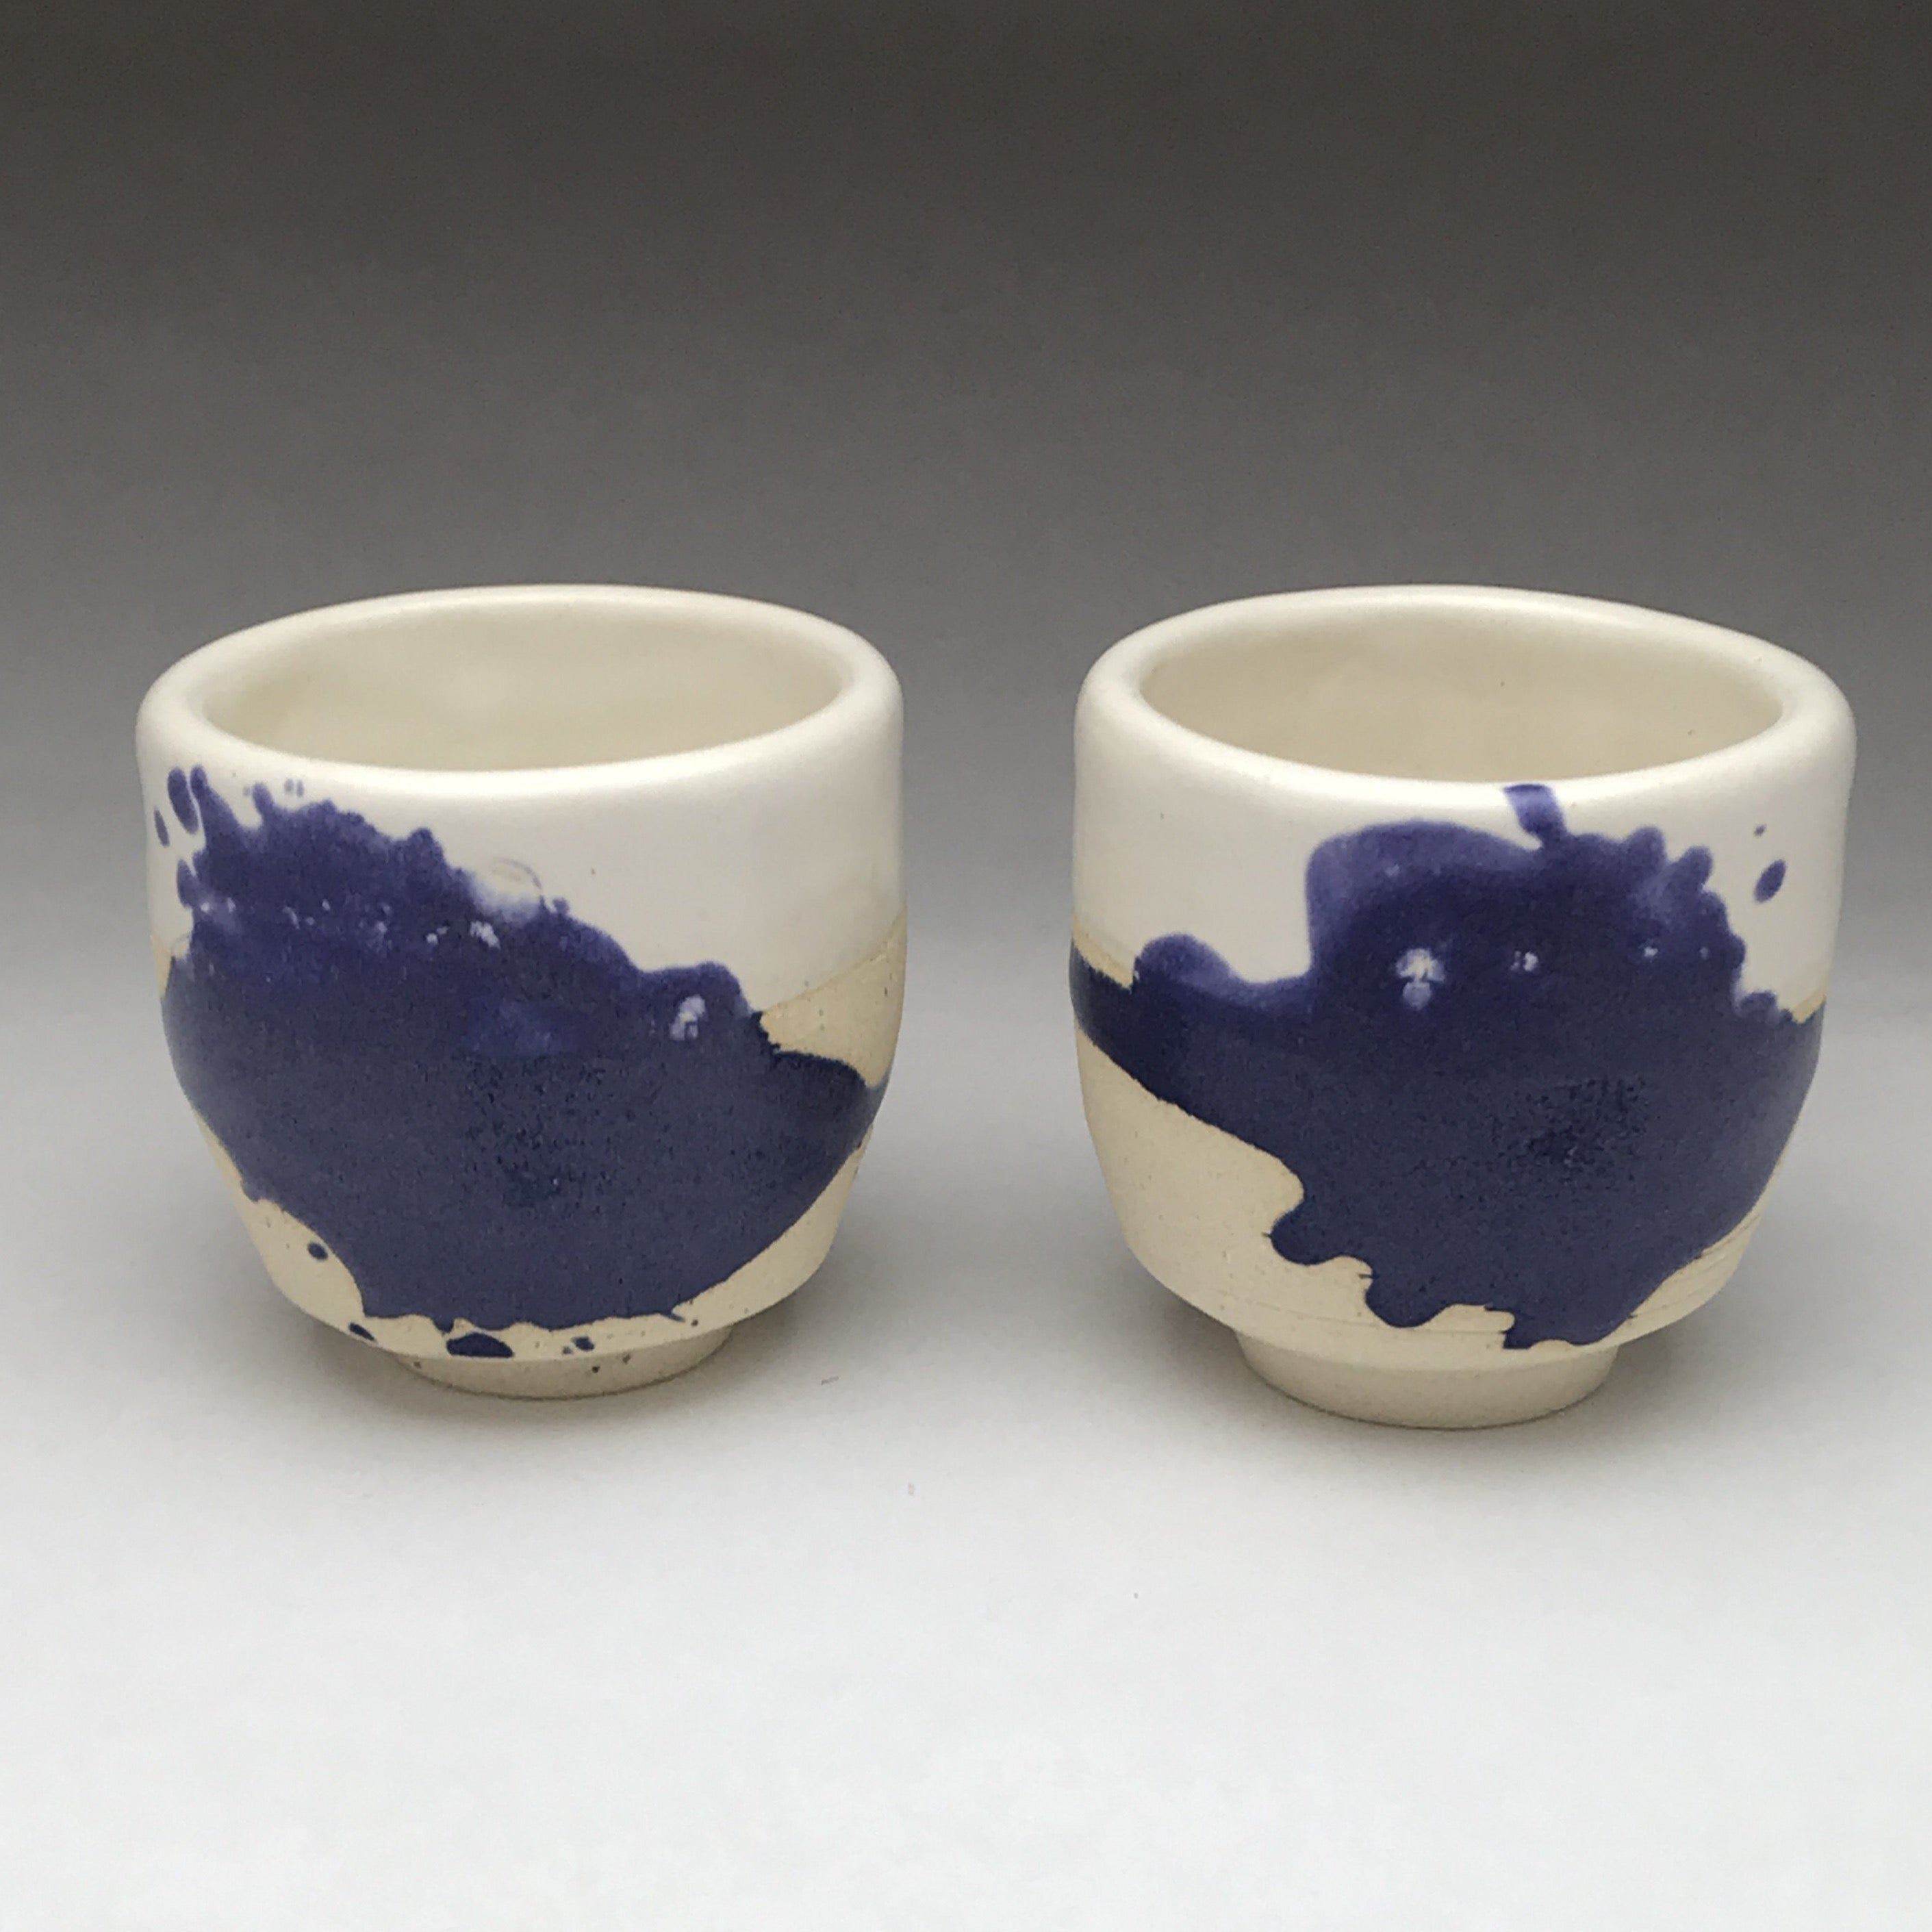 yunomi tea cup whiskey sipper with cobalt blue and white drippy design